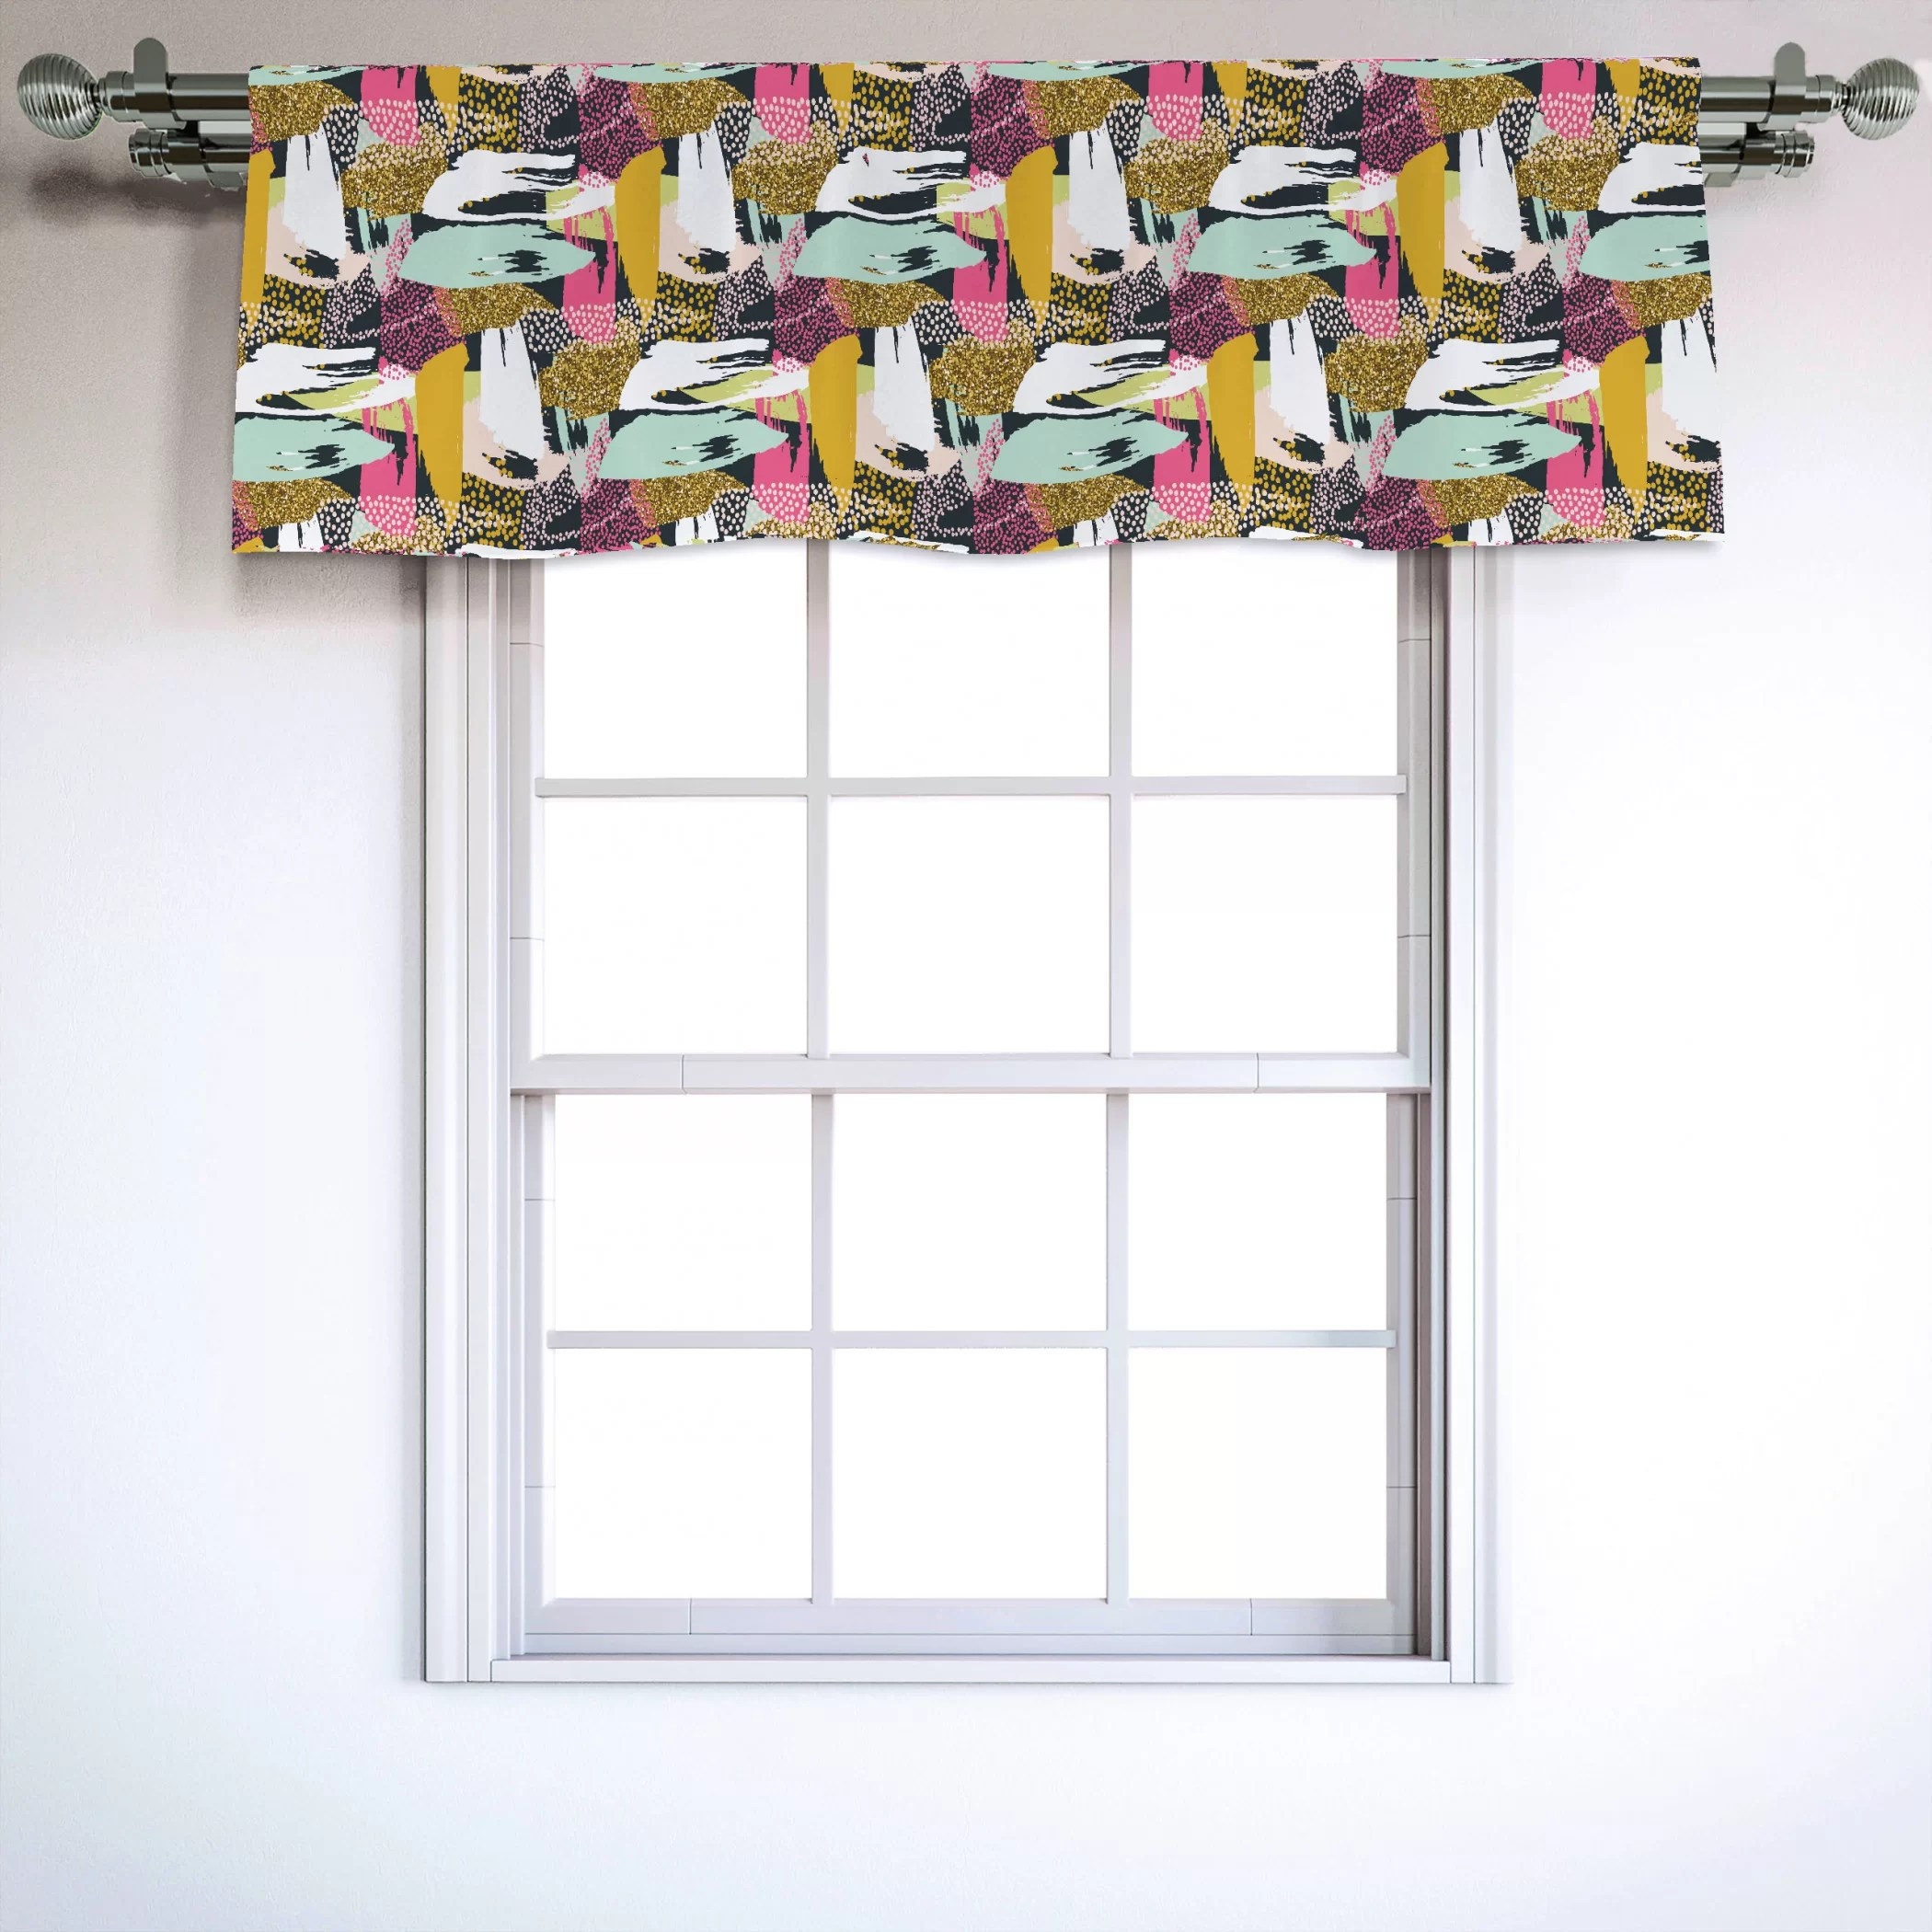 East Urban Home Ambesonne Abstract Window Valance Abstract Different Coloured Brushstroke Lines And Dots Contemporary Art Print Curtain Valance For Kitchen Bedroom Decor With Rod Pocket 54 X 18 Multicolor